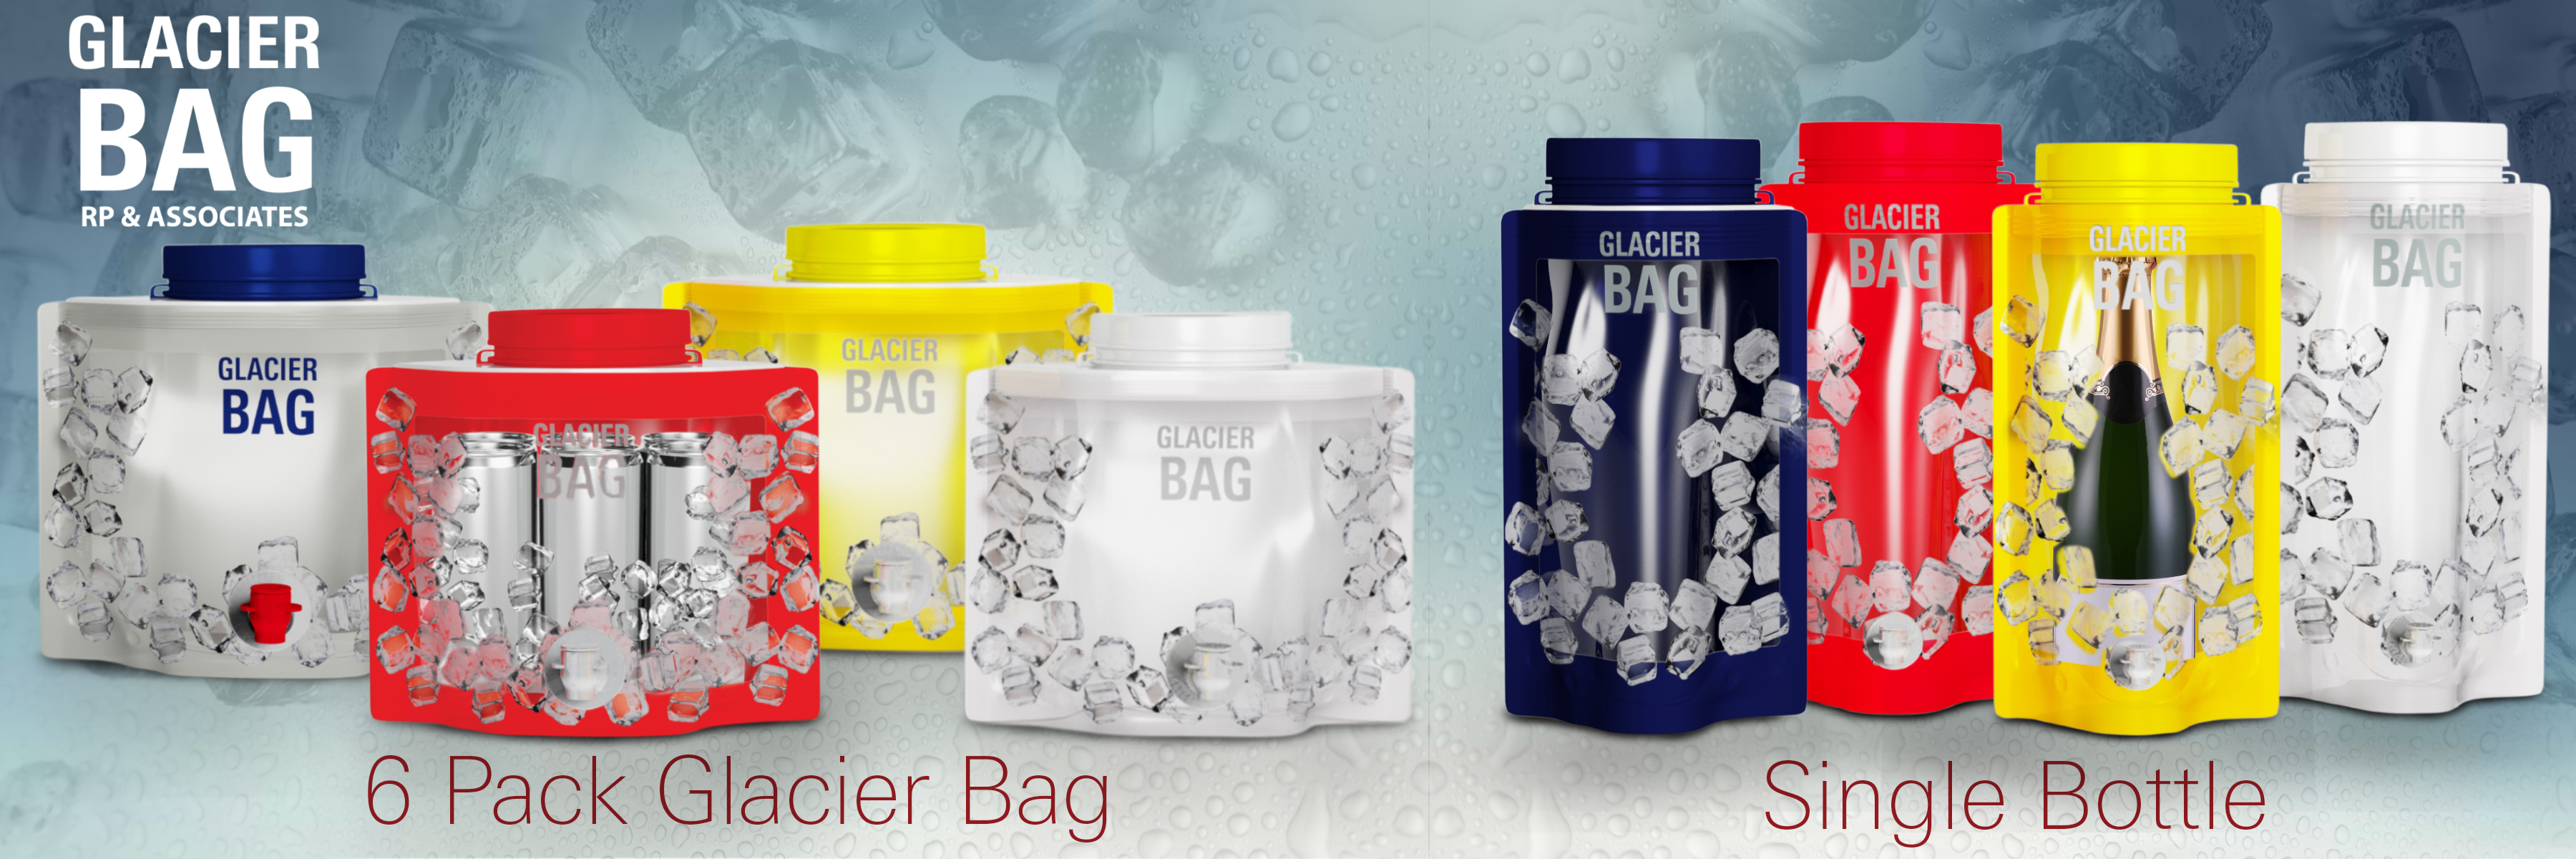 Glacier Bag (6 Pack)